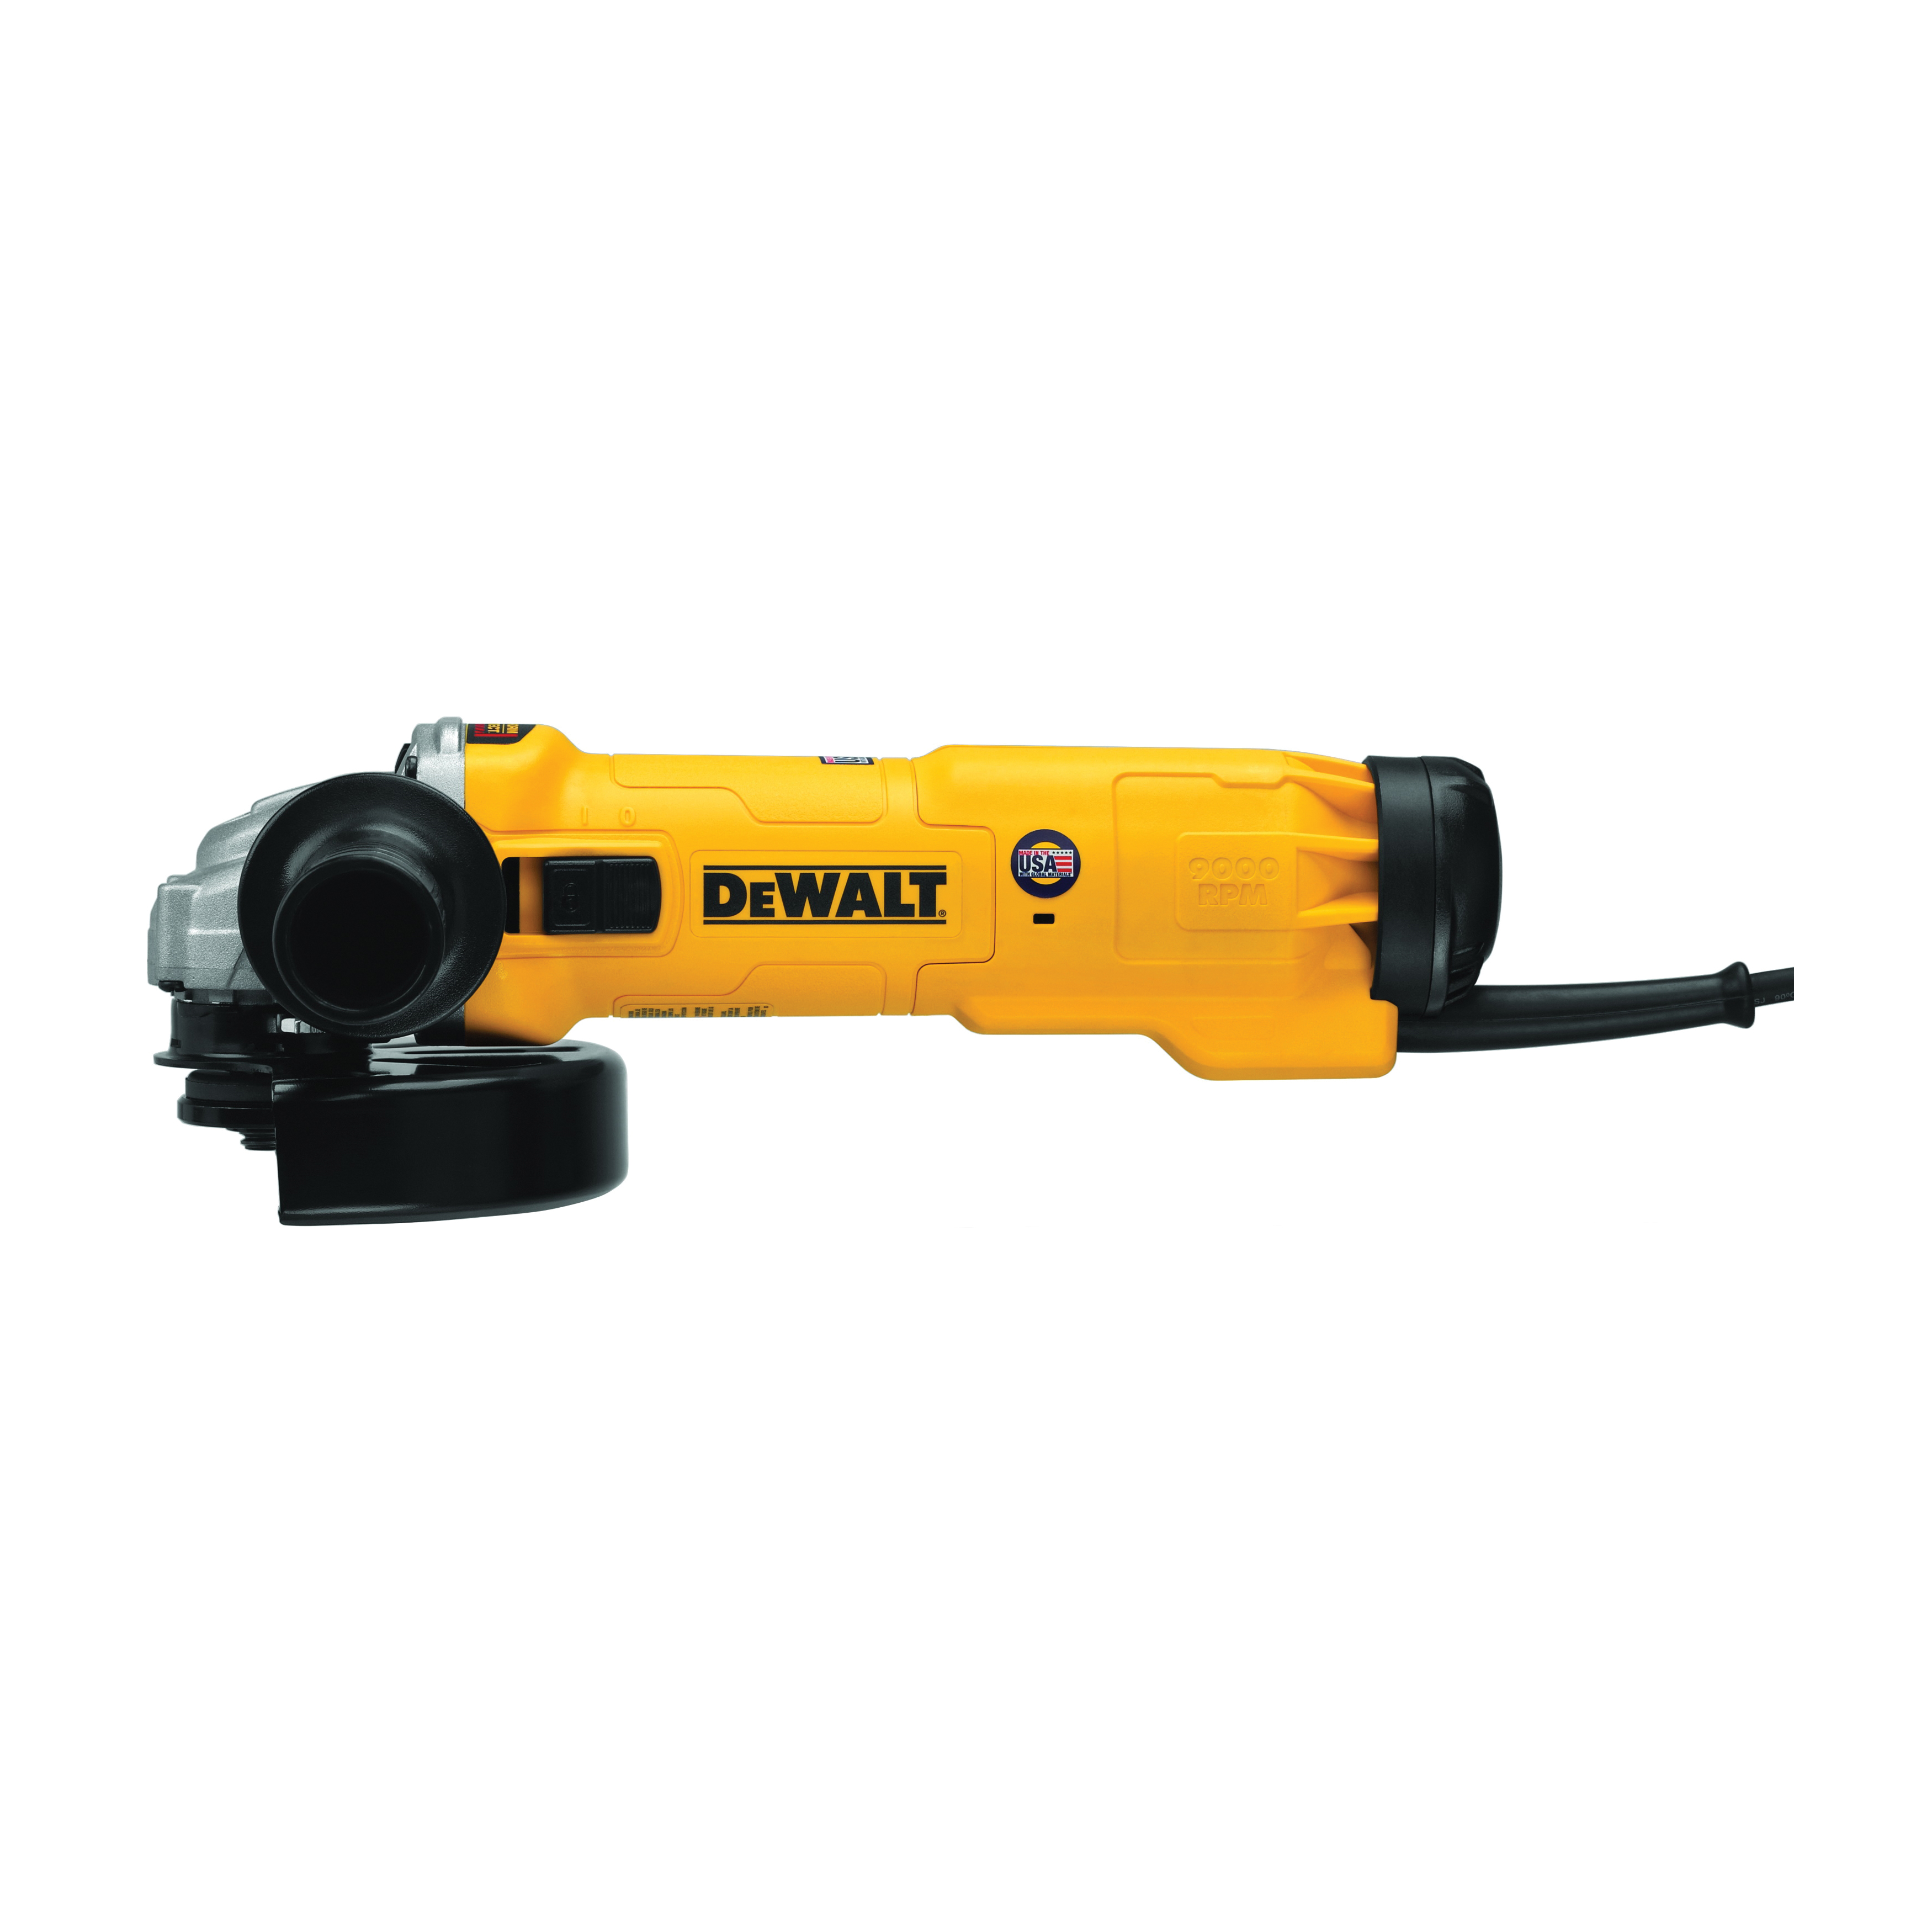 DeWALT® DWE43140 Heavy Duty High Performance Small Angle Grinder, 6 in Dia Wheel, 5/8-11 Arbor/Shank, 120 VAC, Black/Yellow, Yes Dust Management, Slide Switch Switch, Tool Only